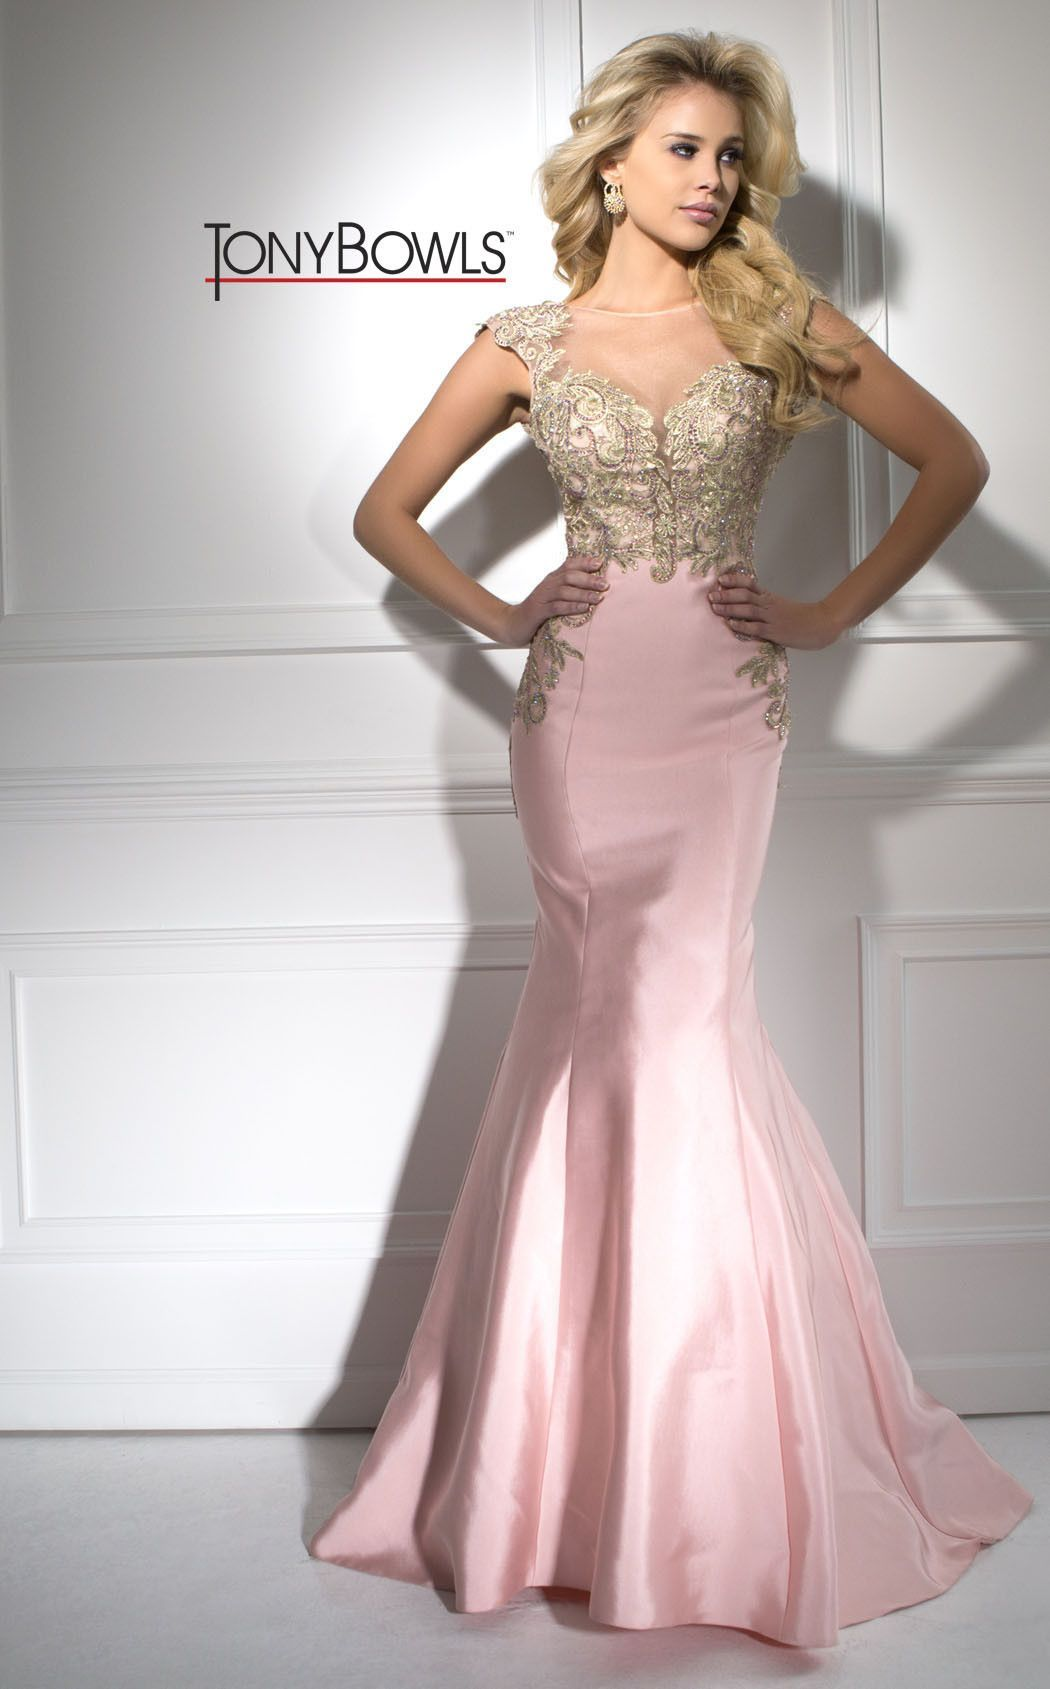 English rose prom dress with gold accents this dress is mermaid